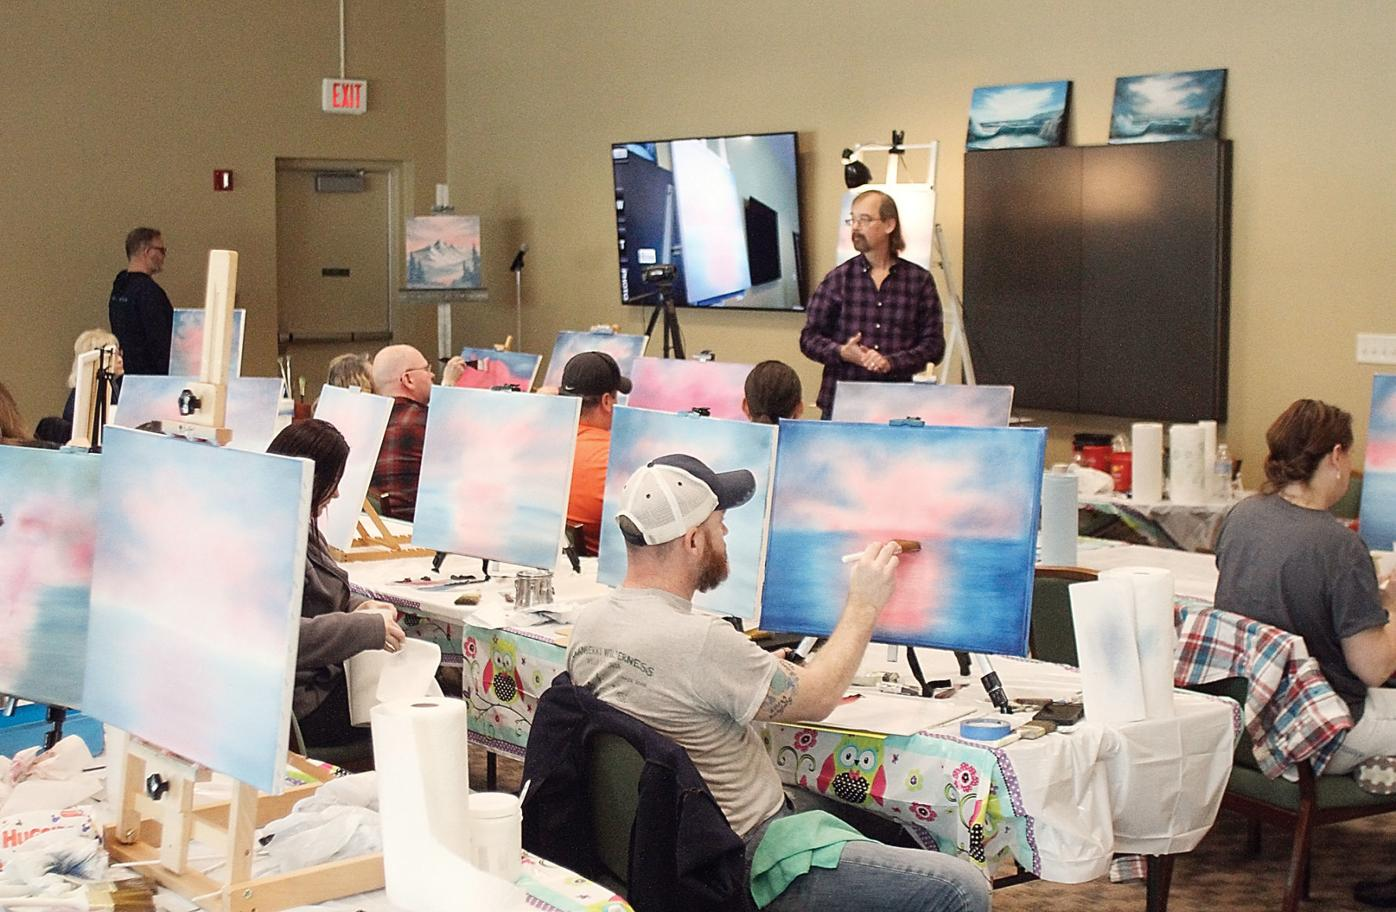 Steve Ross teaches painting at the Blount County Library